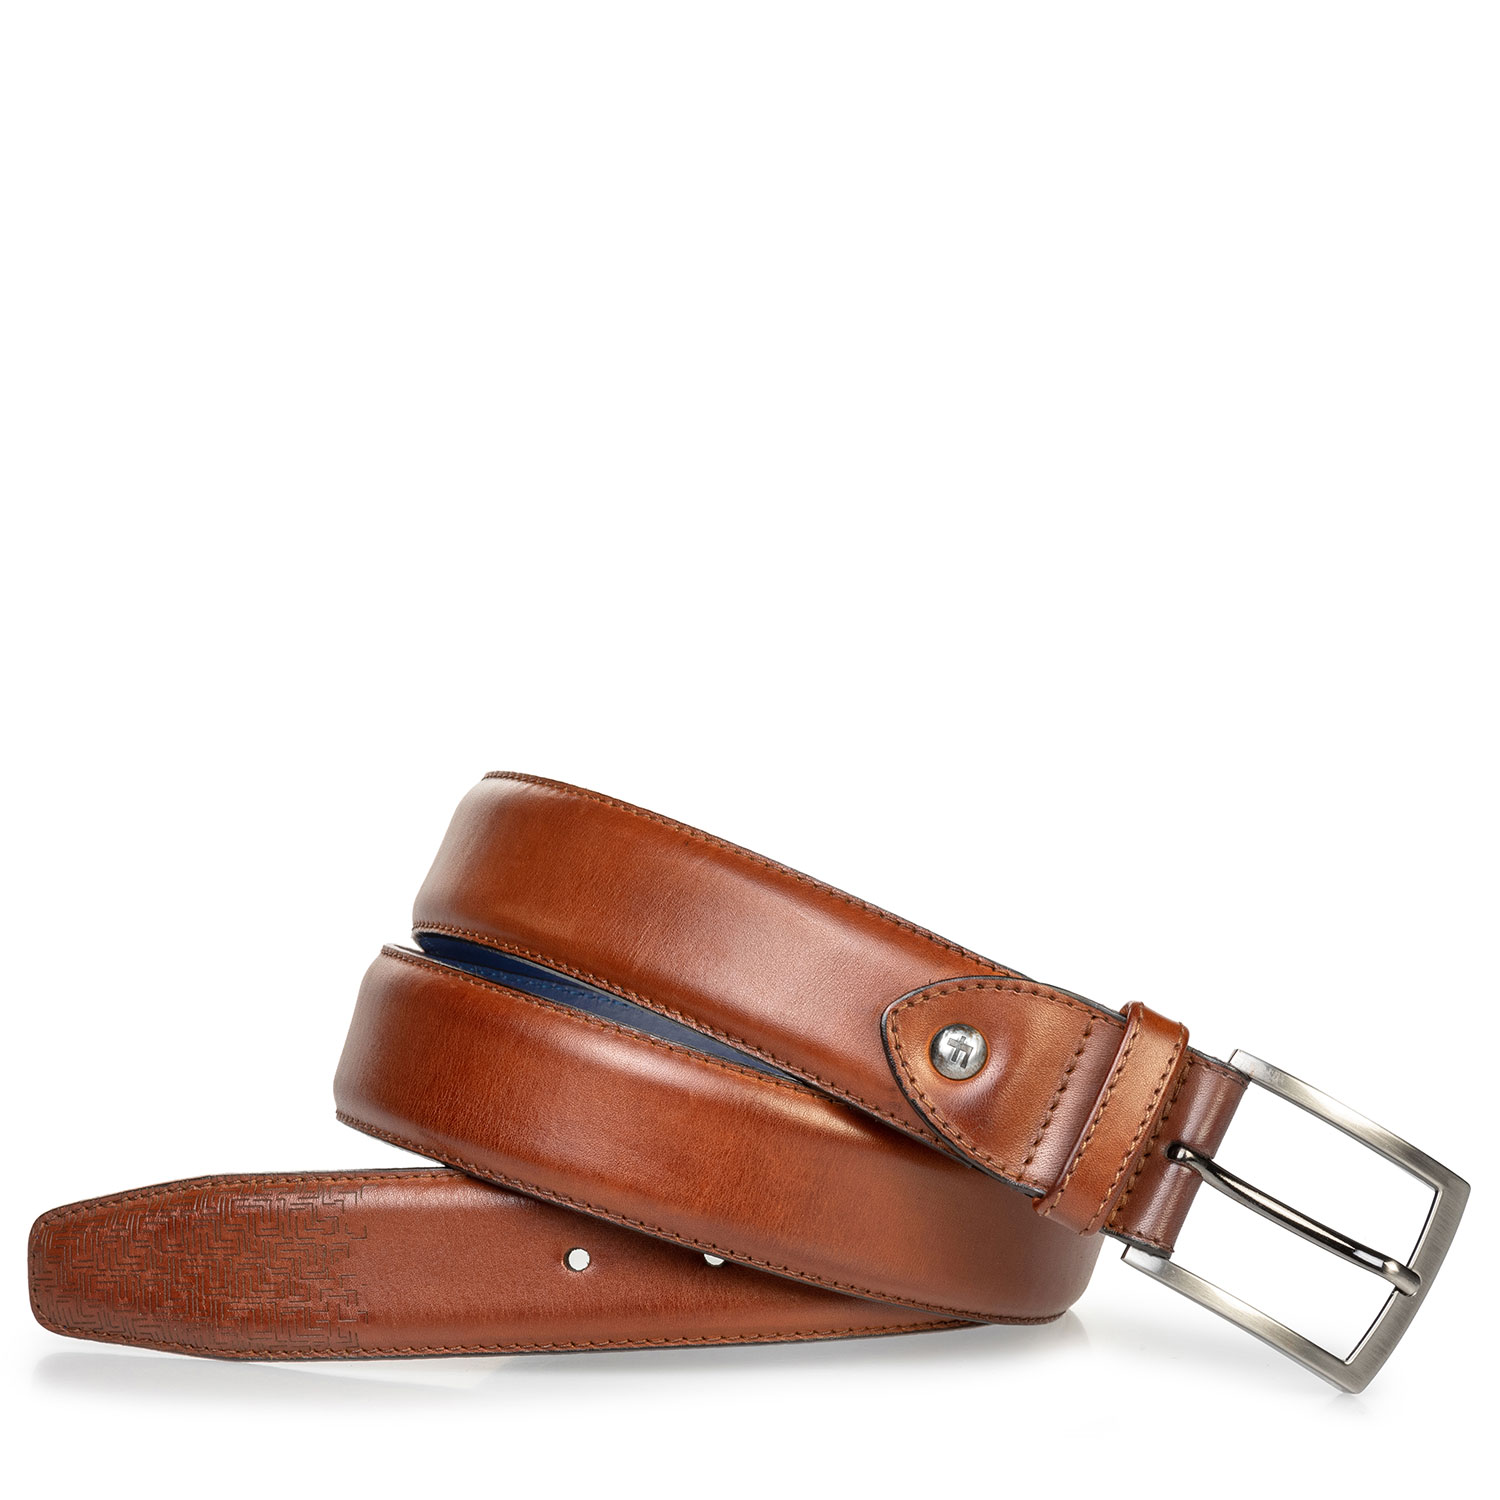 75218/00 - Leather belt cognac with laser-cut print